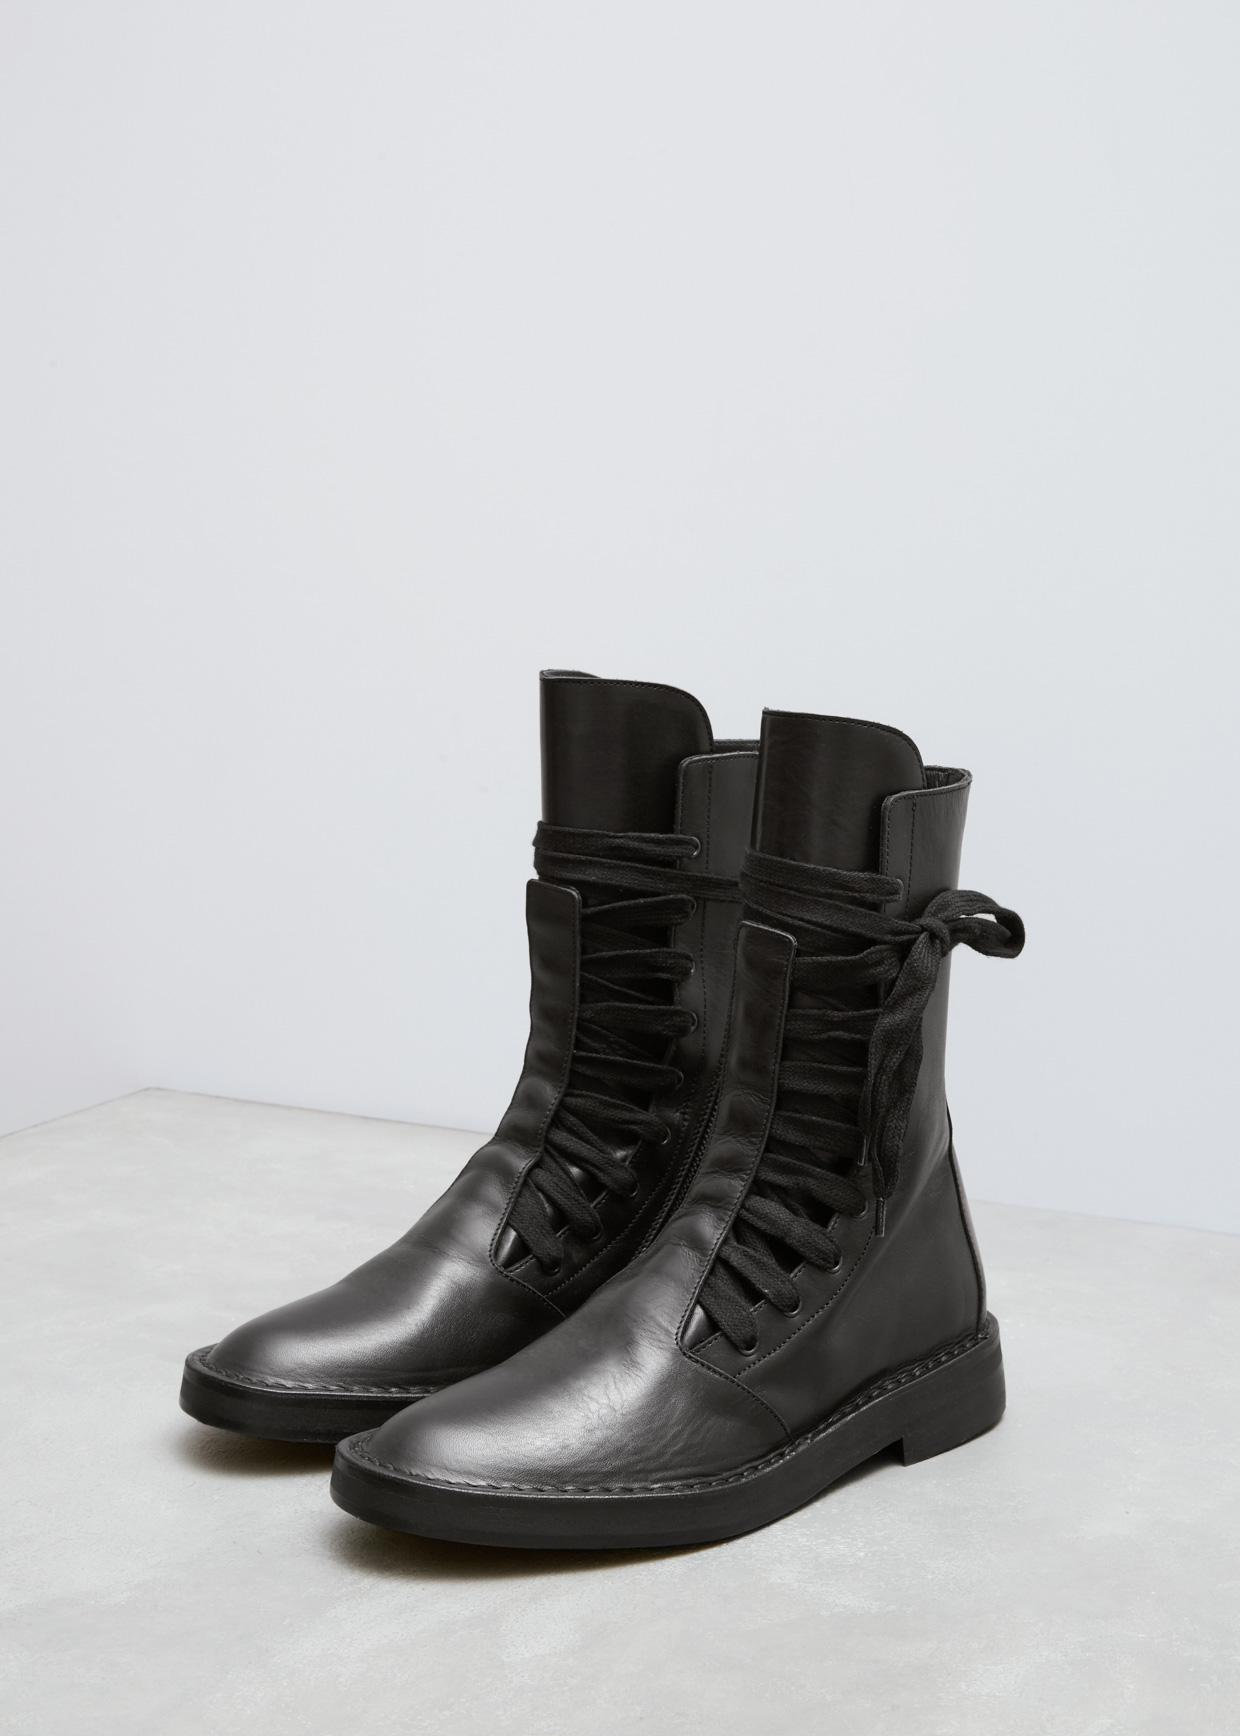 c0c666ffc0cdd Ann Demeulemeester Vitello Lux Black Wide Lace Up Boot in Black - Lyst